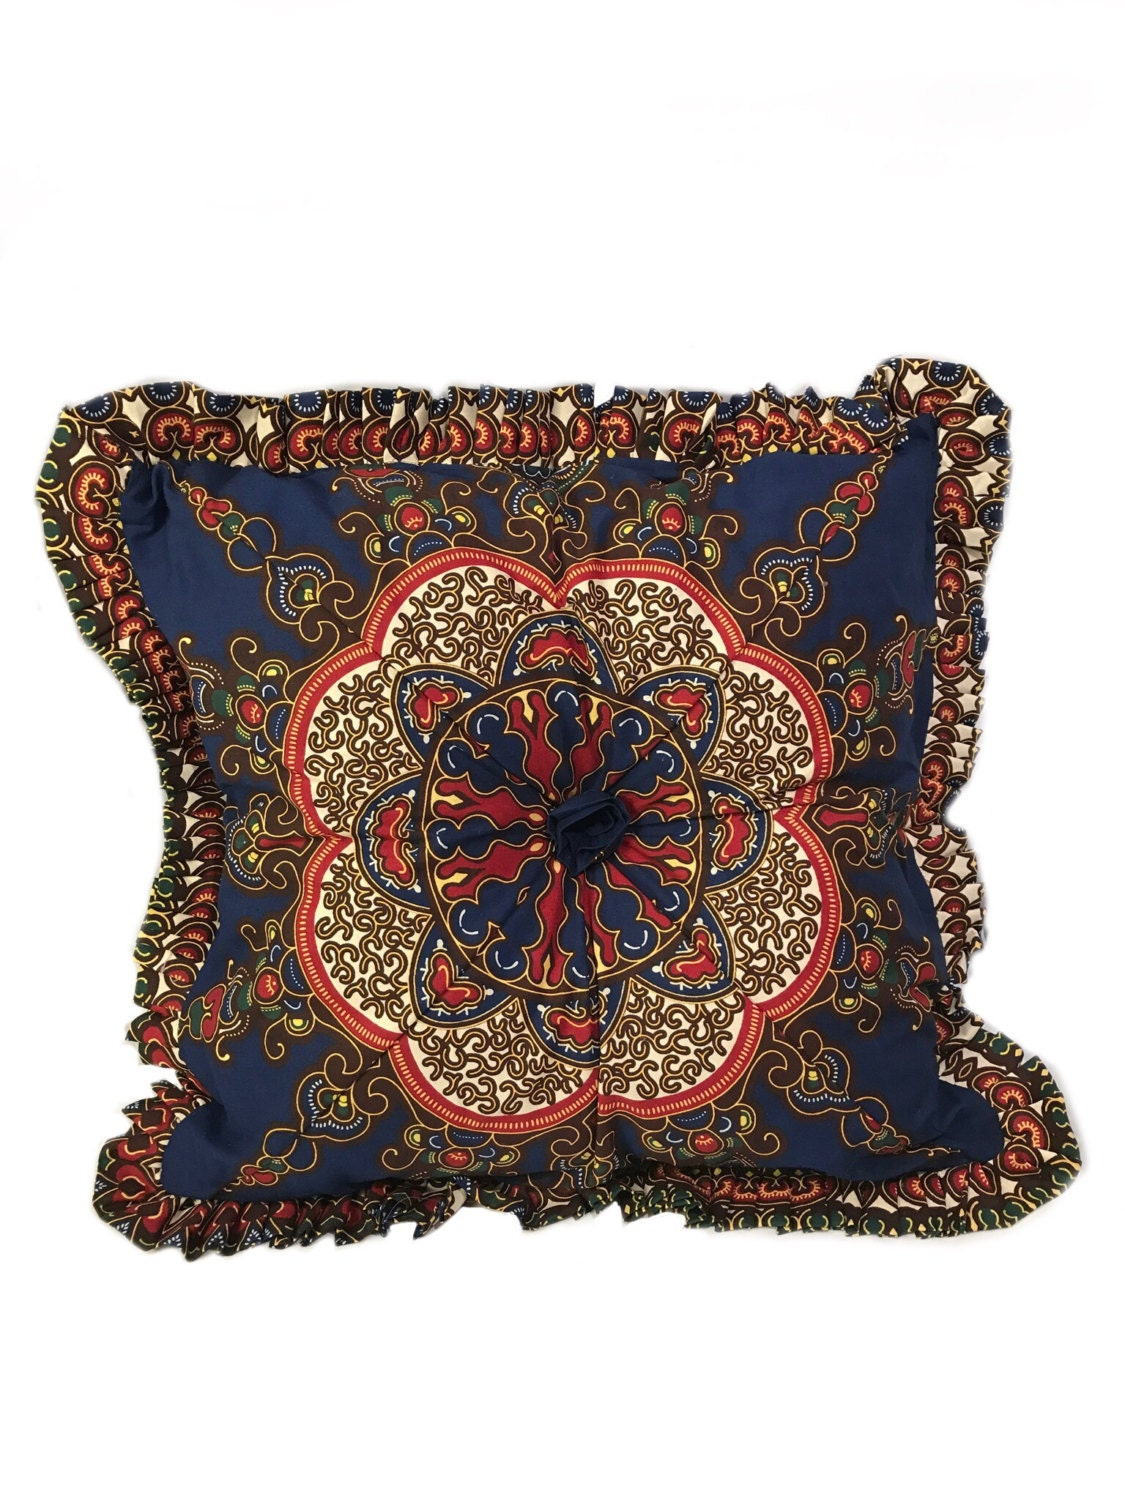 Throw Pillows Malum : Moroccan Throw Pillow Moroccan Print Decorative Pillow